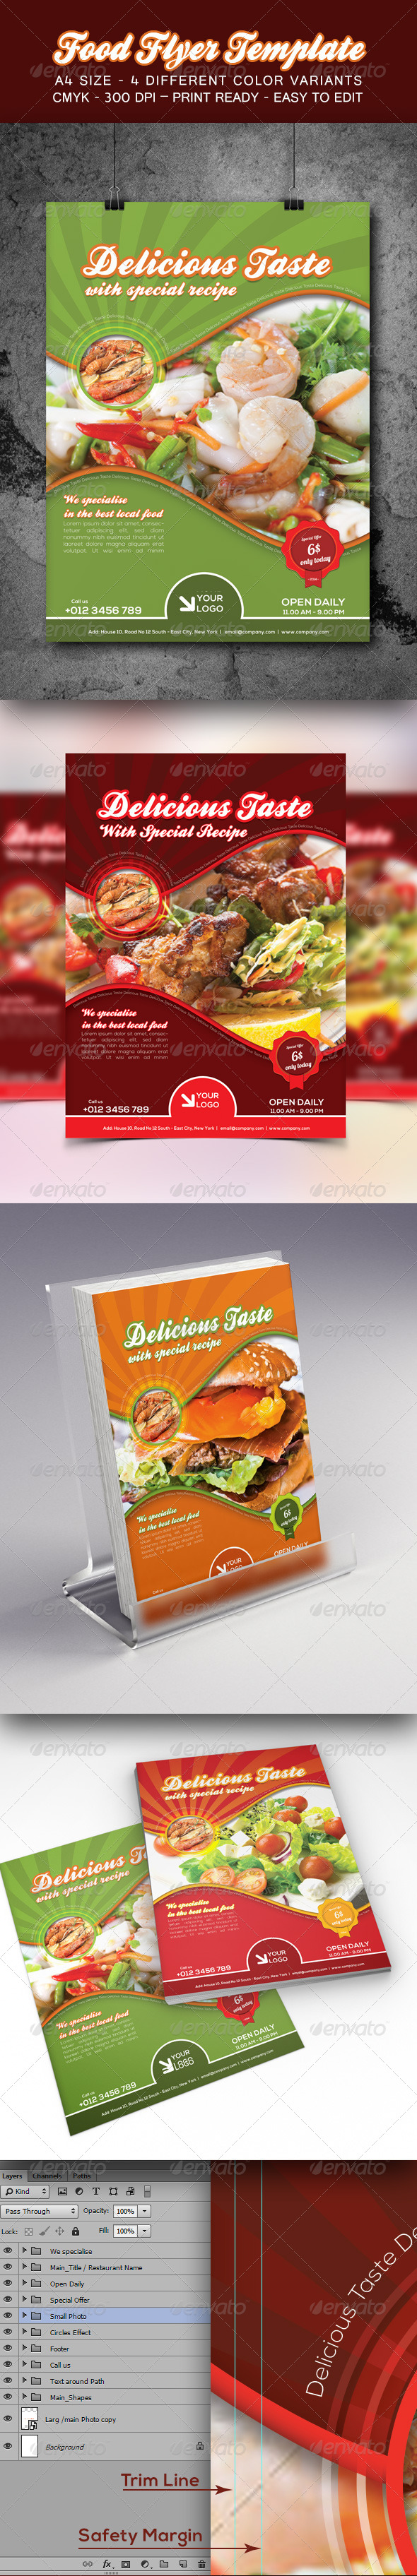 GraphicRiver Food Flyer Template 8570334